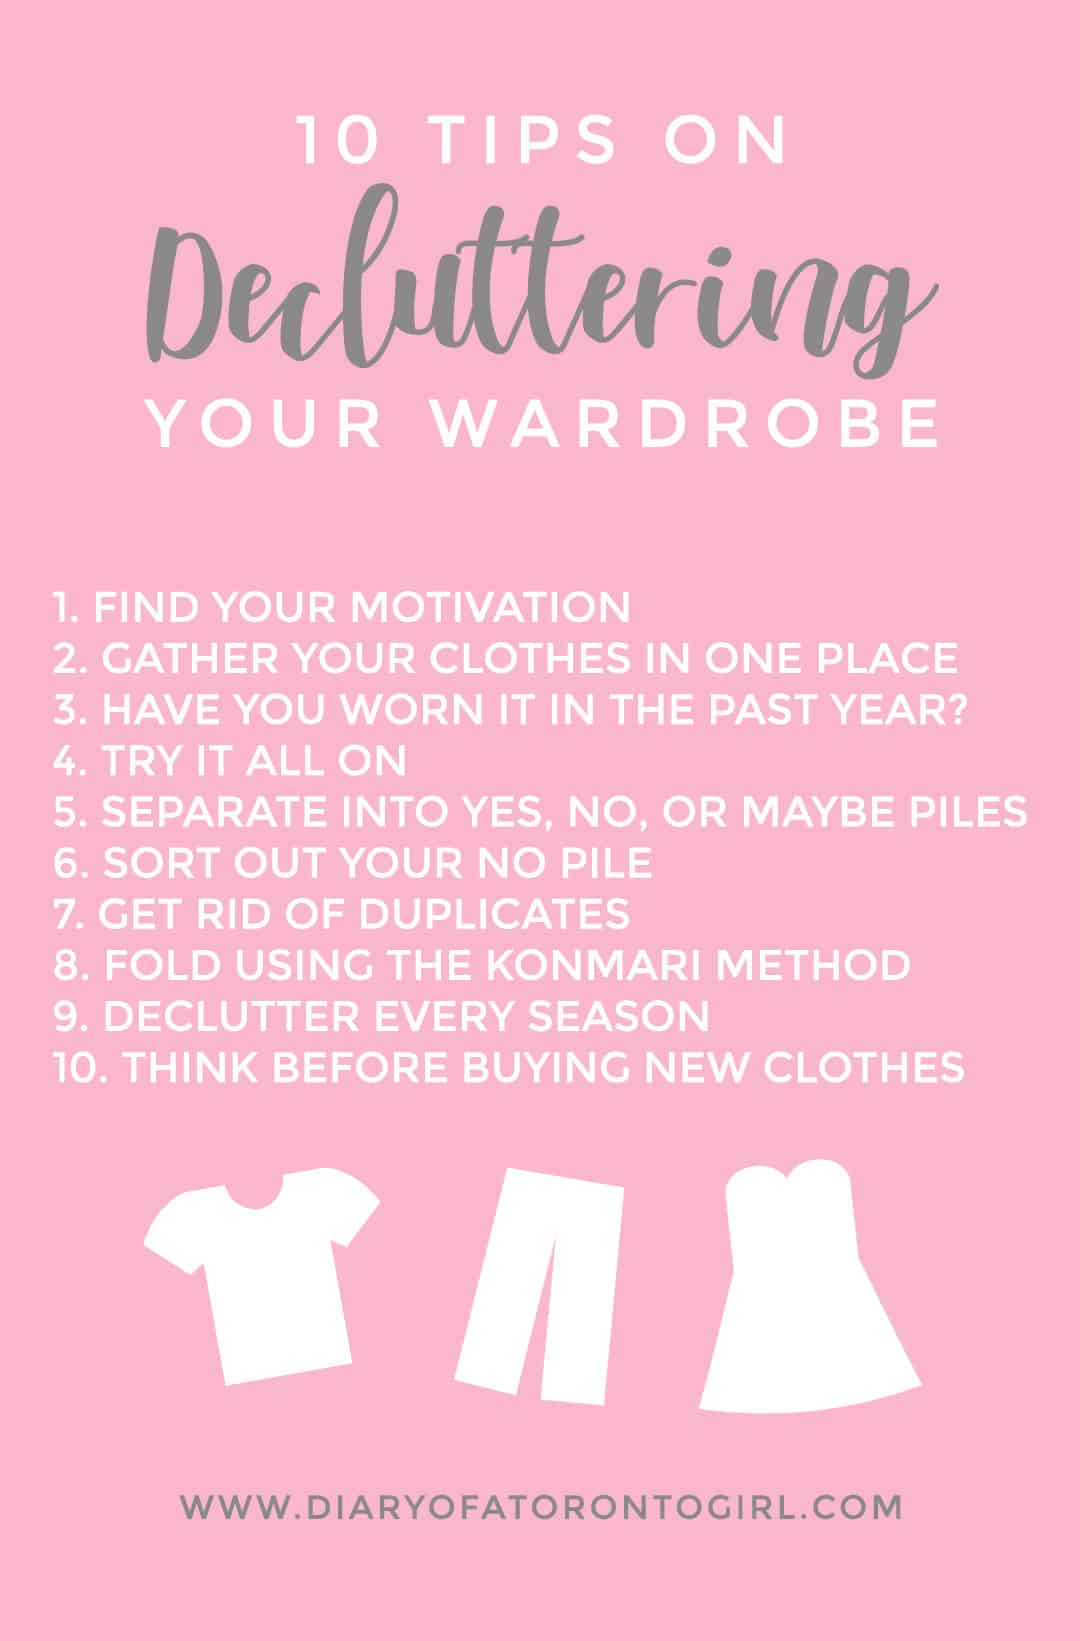 Wardrobe decluttering tips to help you build that minimal capsule wardrobe (or just make more room for new clothes in your closet).